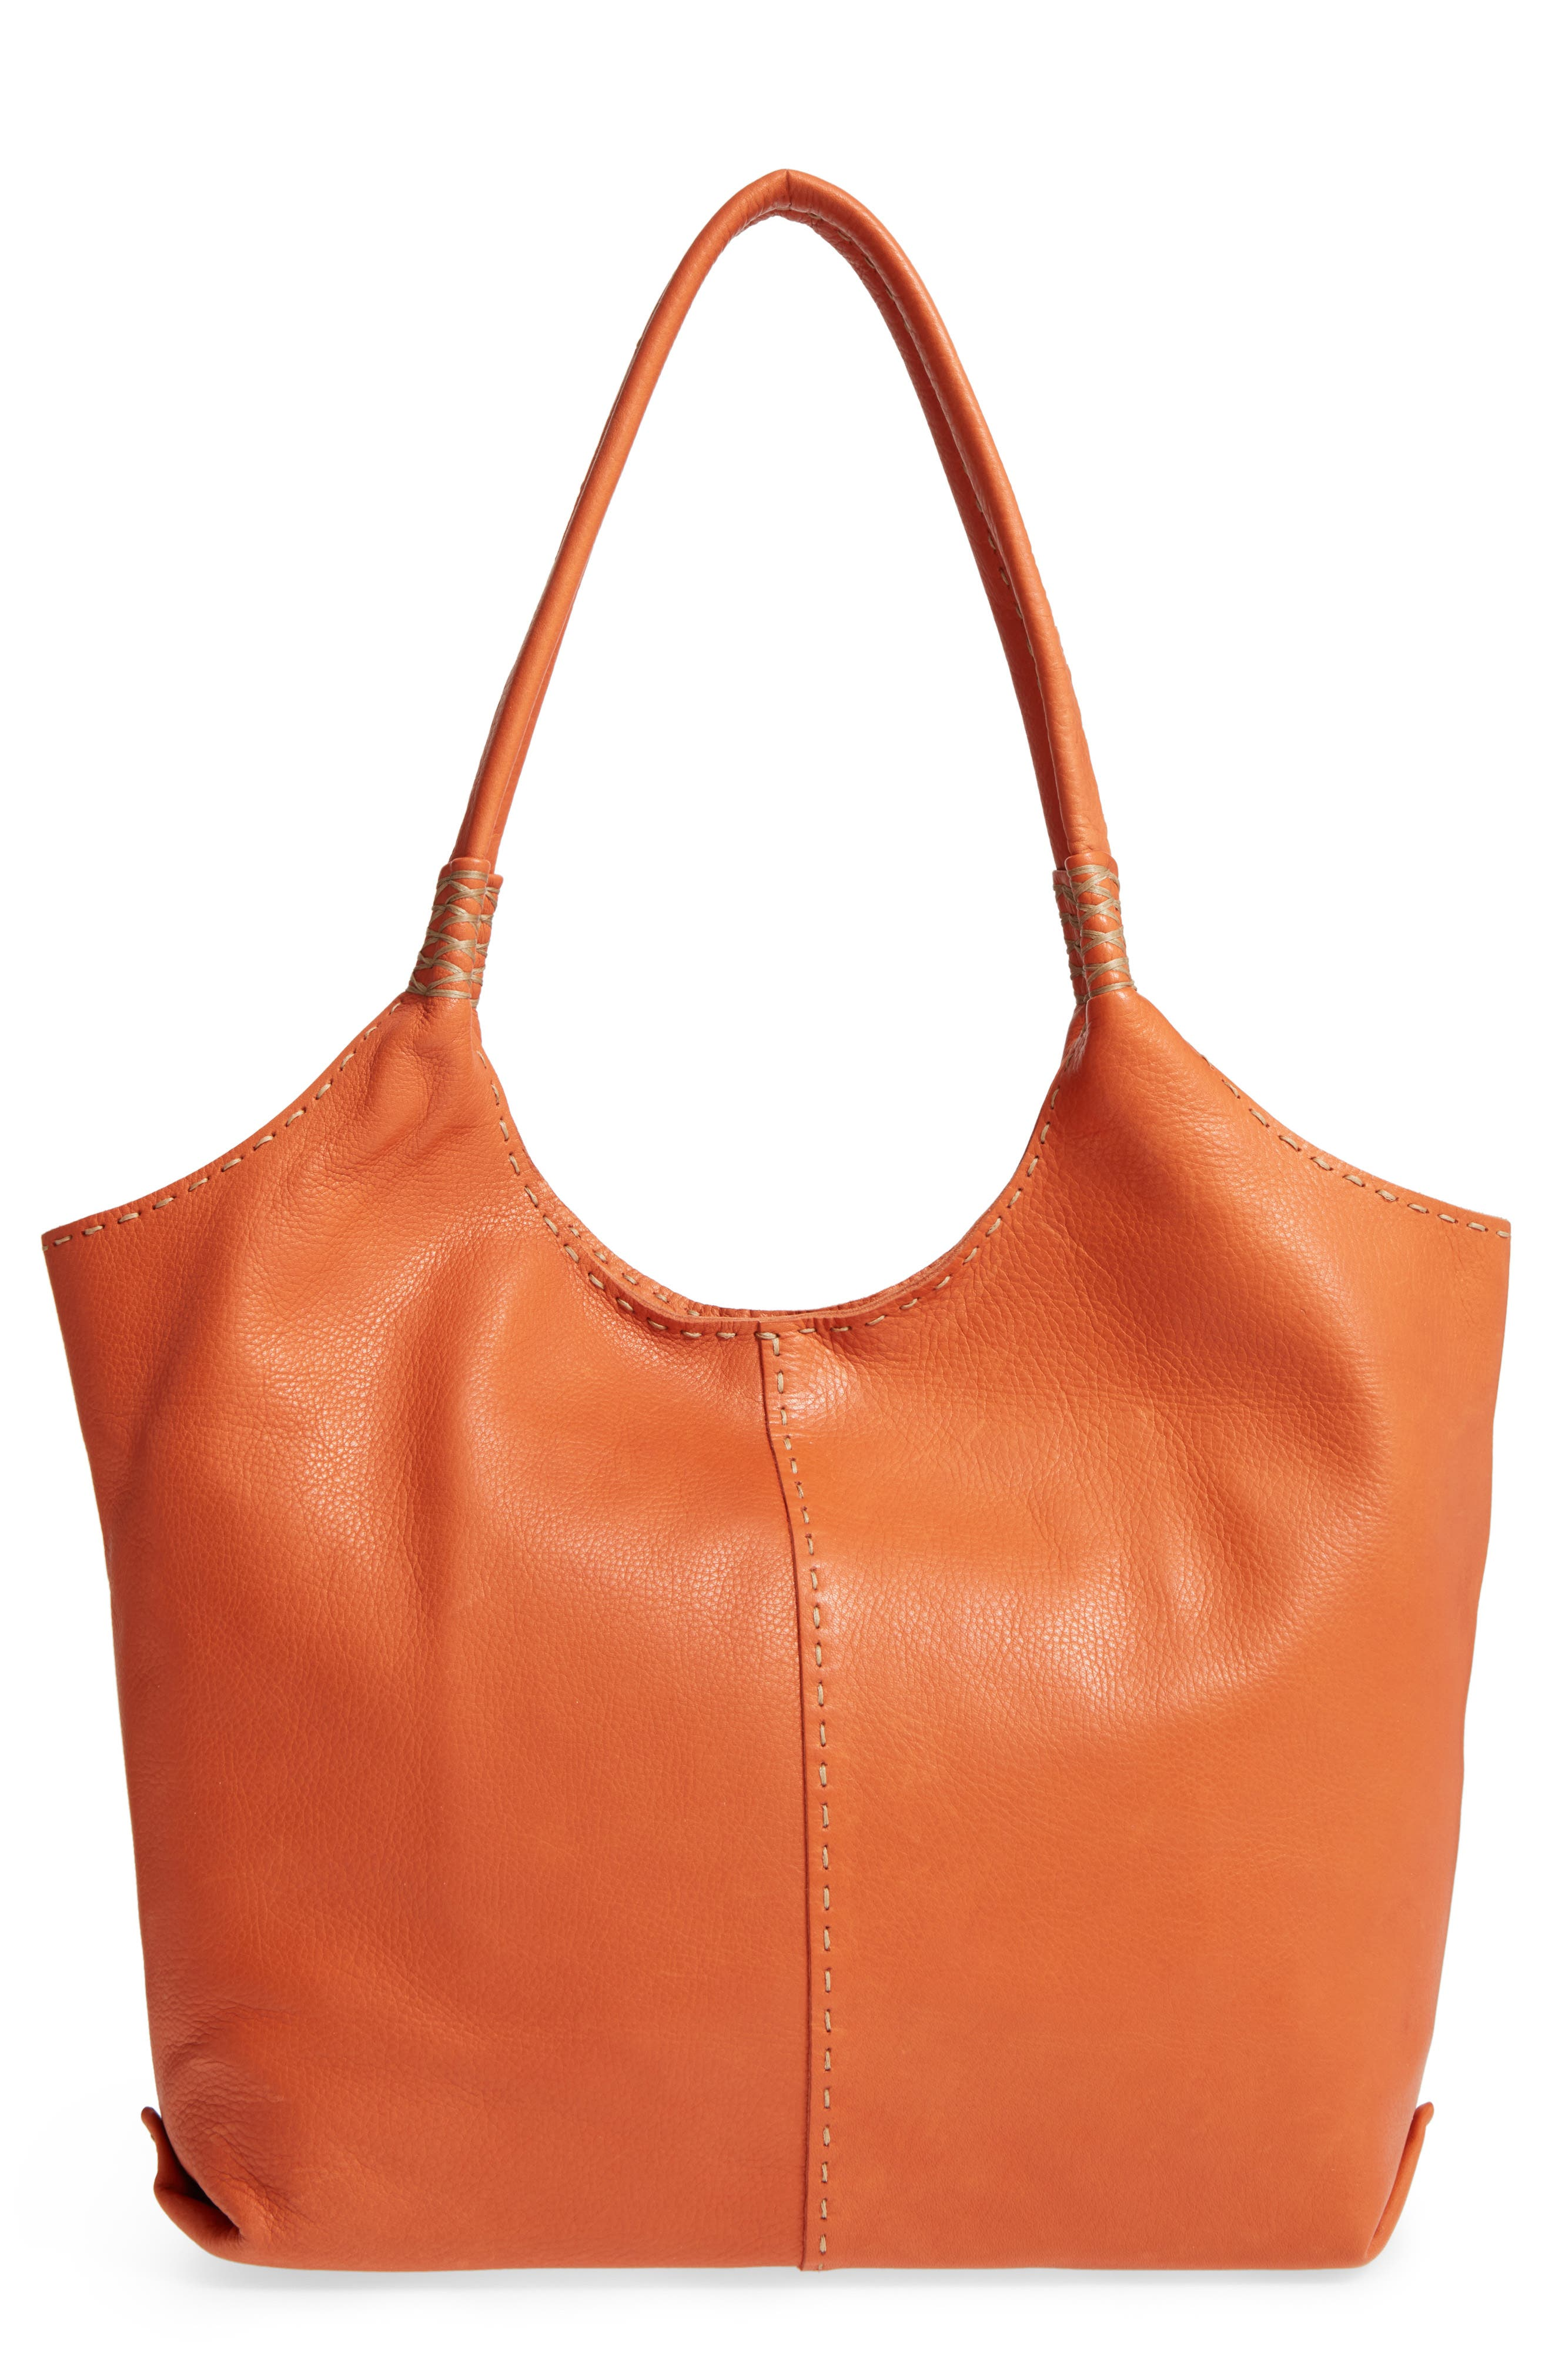 Frye Naomi Leather Shoulder Bag